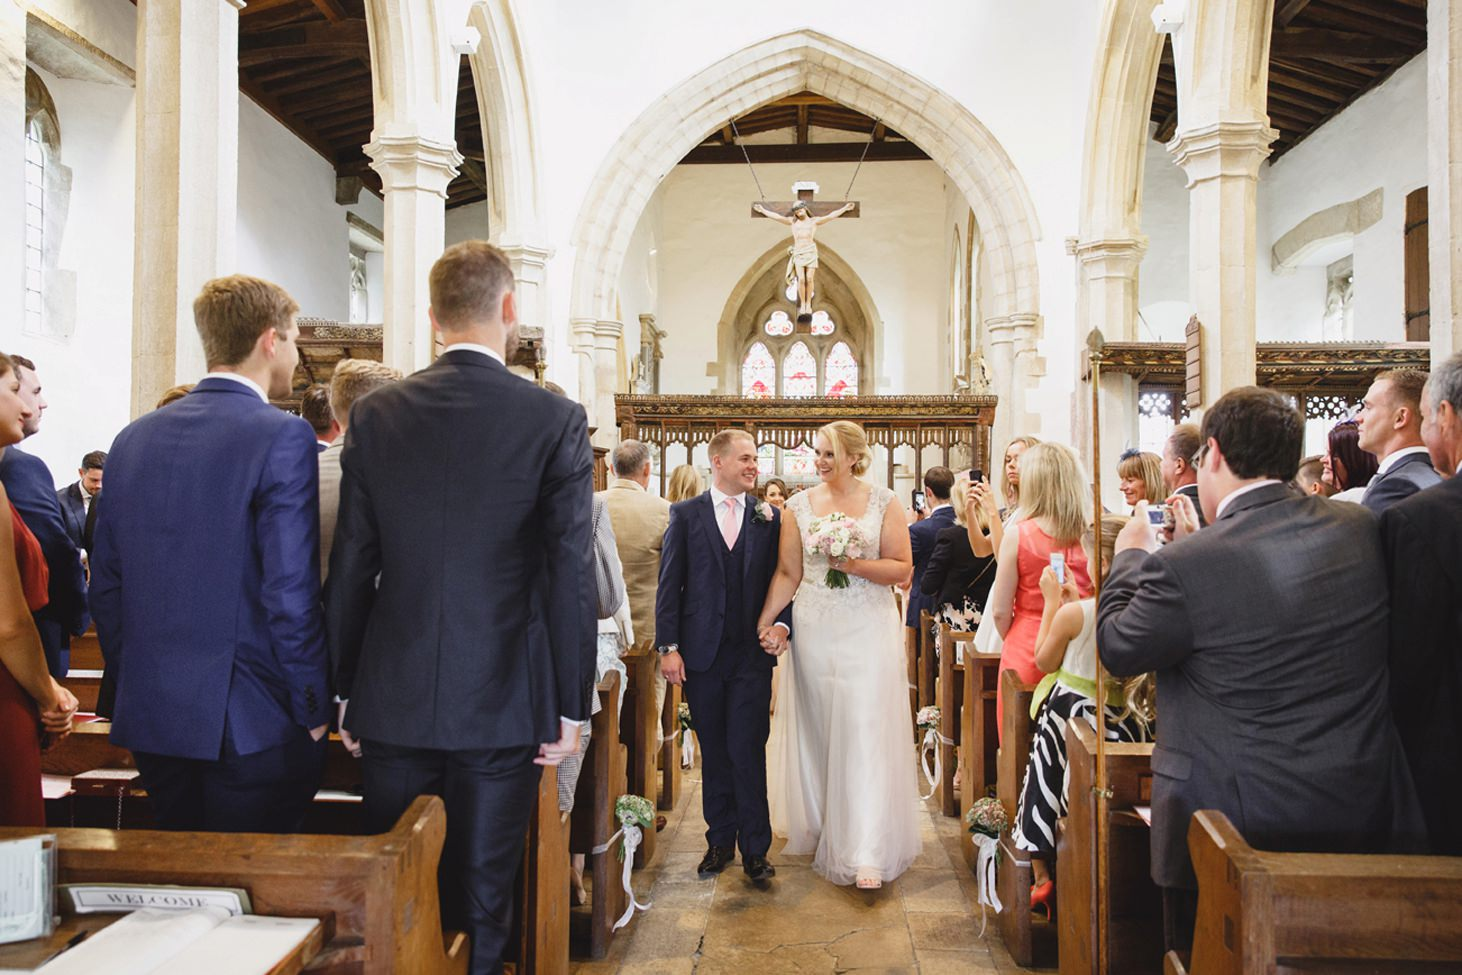 oxfordshire wedding photography bride and groom in aisle